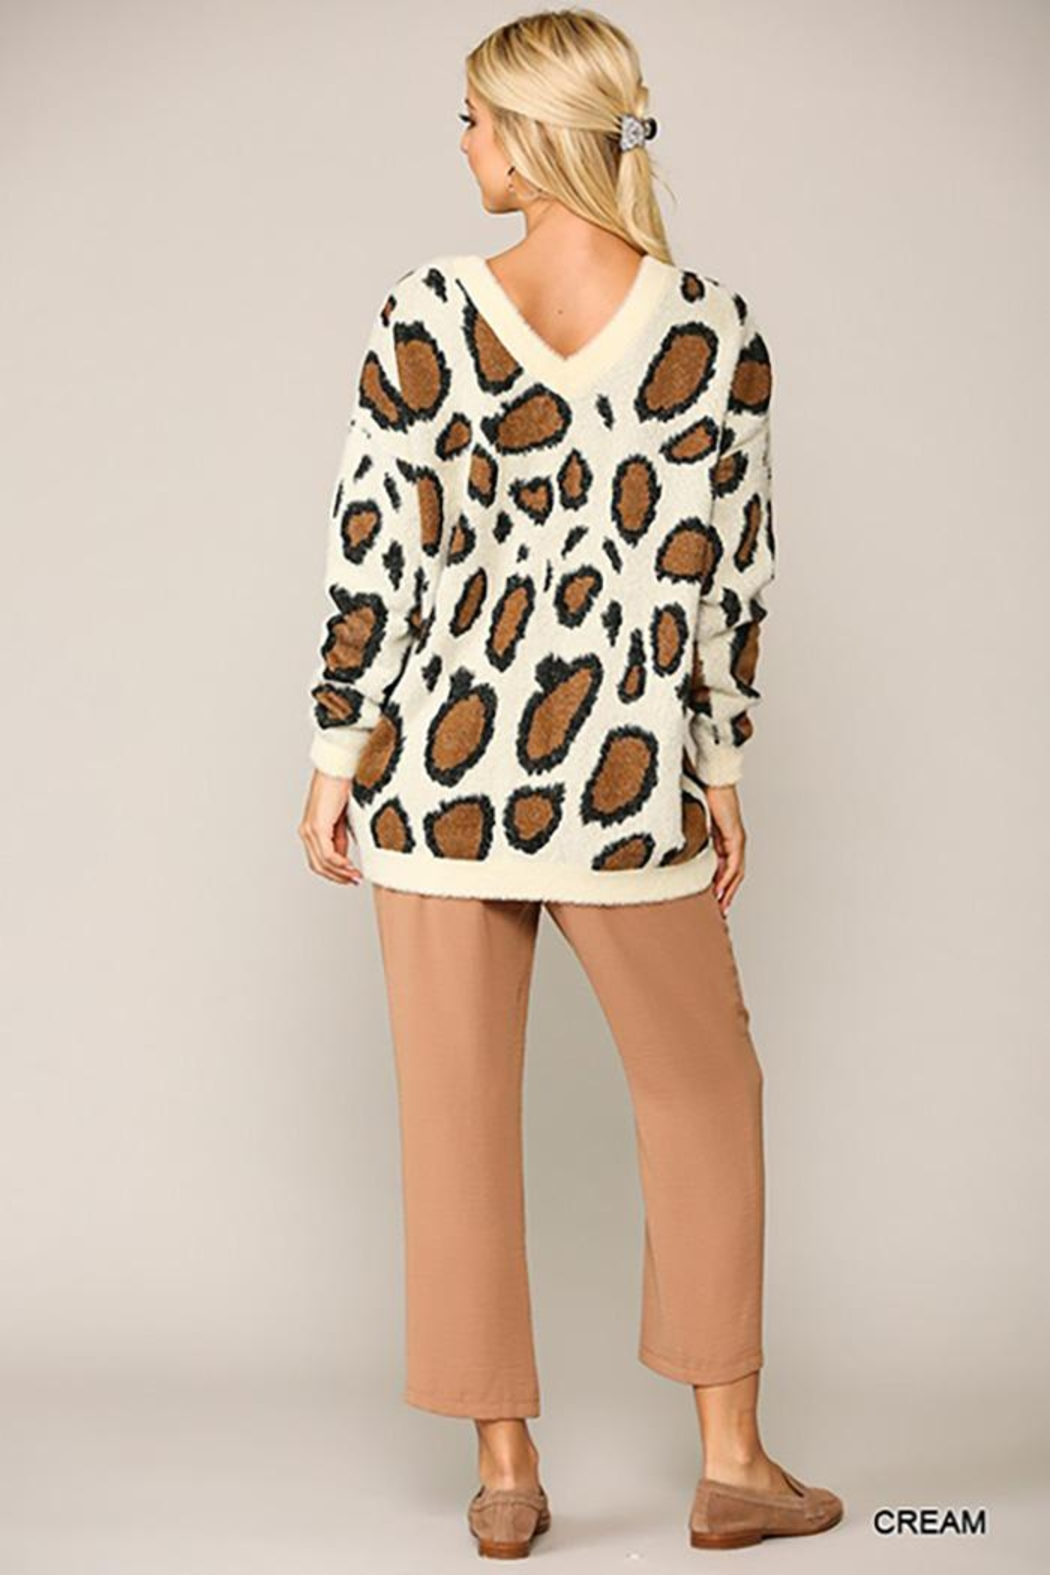 GiGiO Leopard Pattern V-Neck Soft Sweater Top - Side Cropped Image